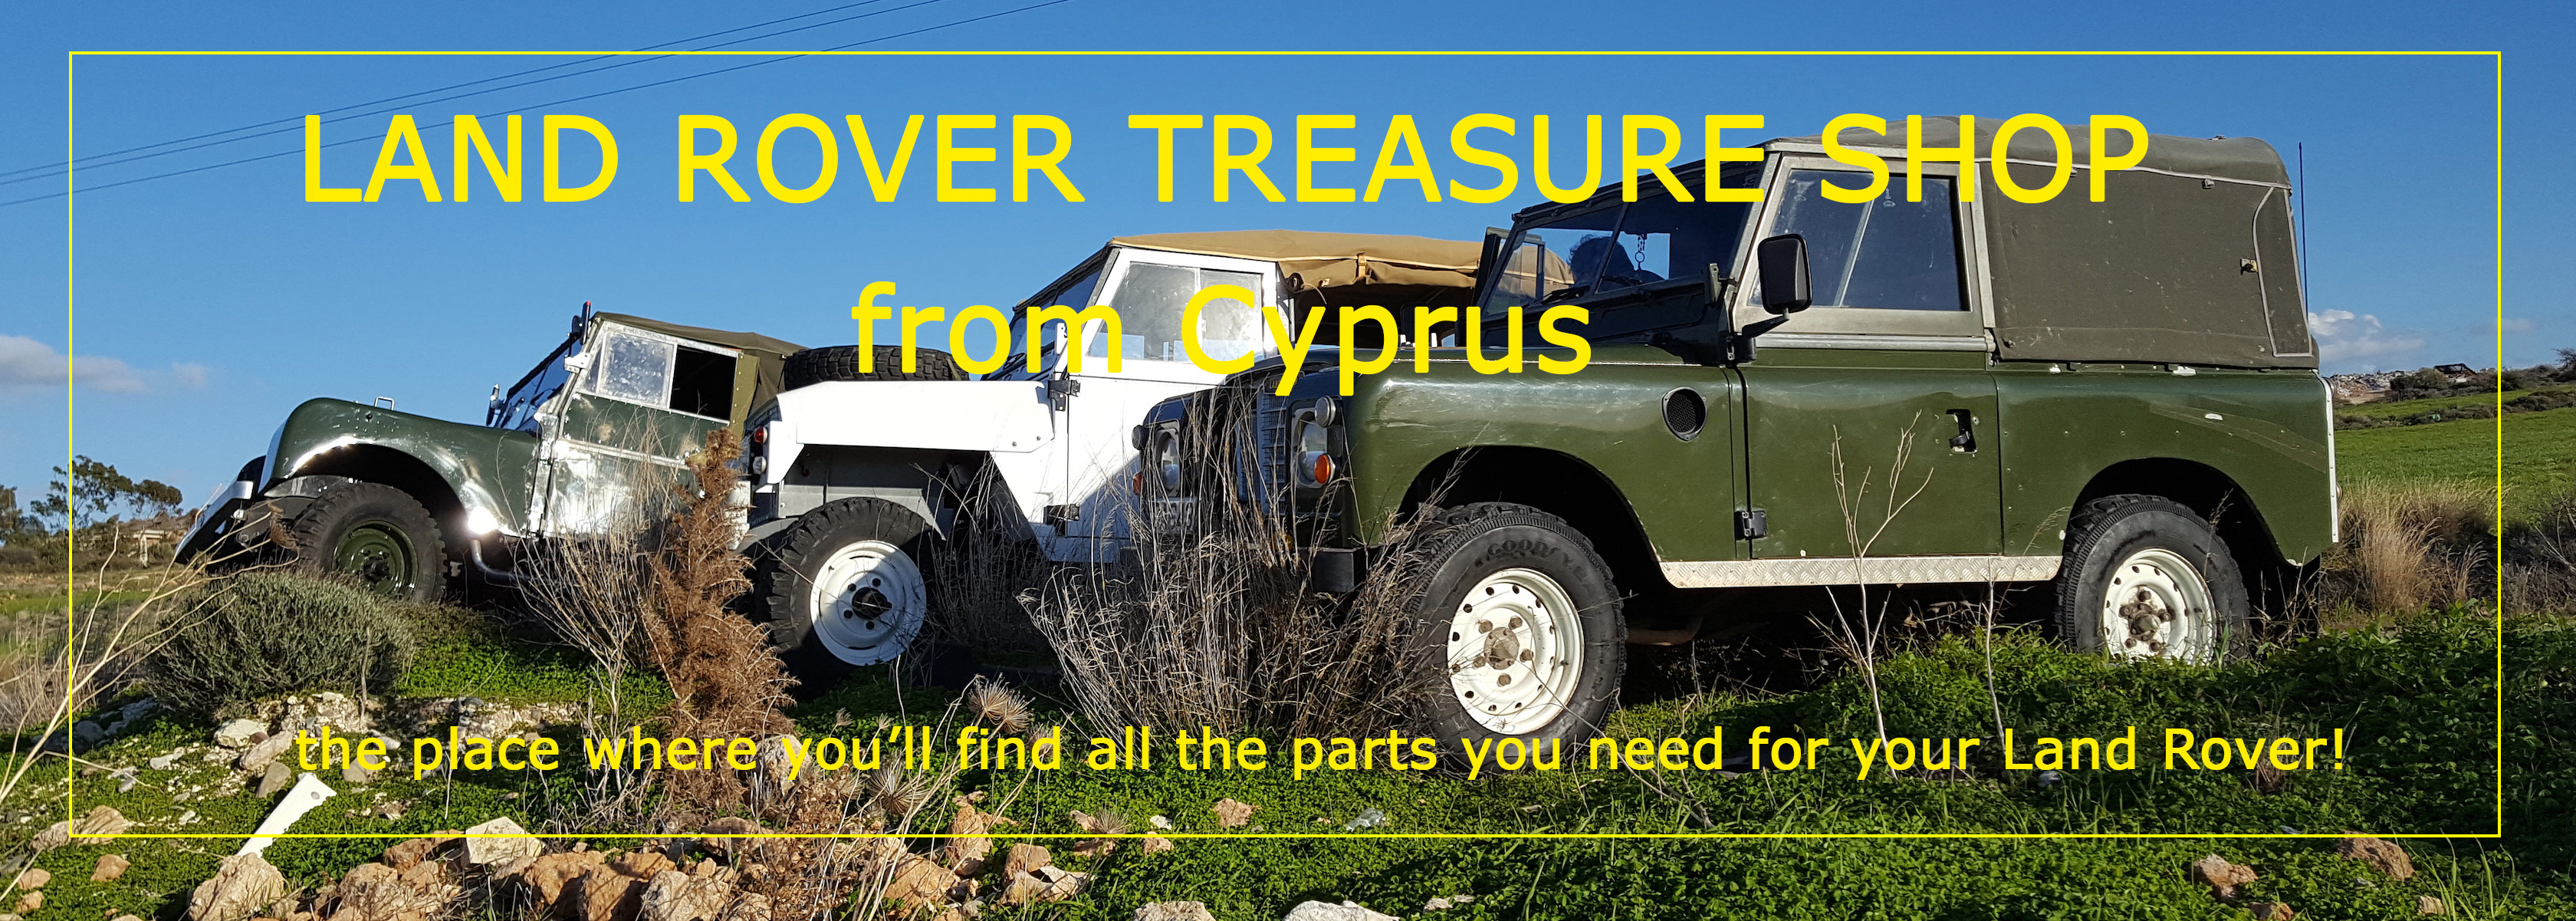 Land Rover Treasure Shop